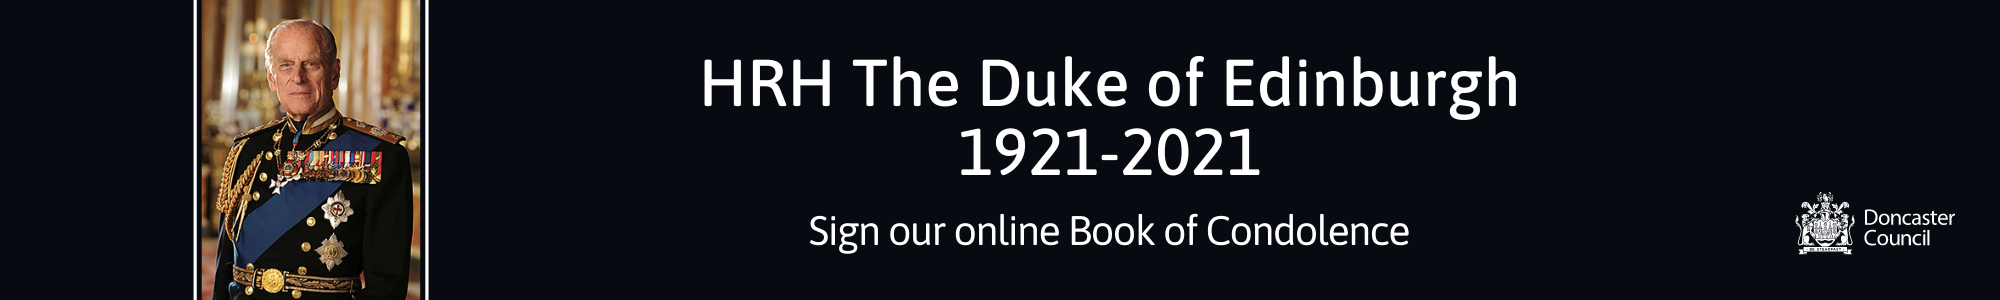 HRH The Duke of Edinburgh online condolence book